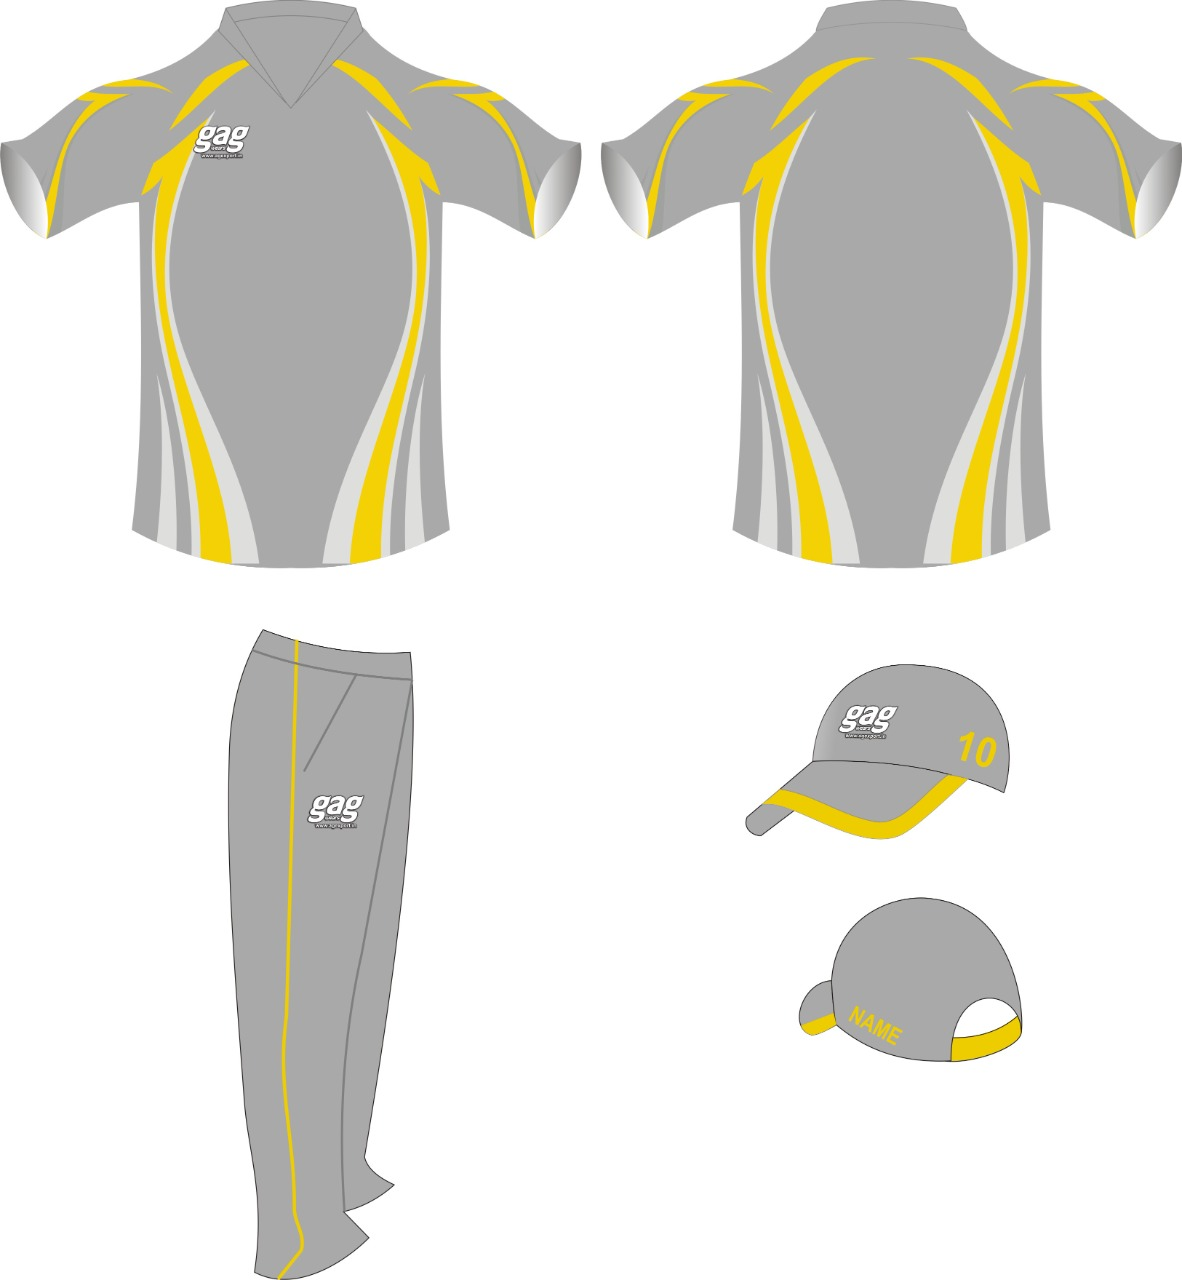 Cricket Tshirt Manufacturers in Jalandhar in Argentina